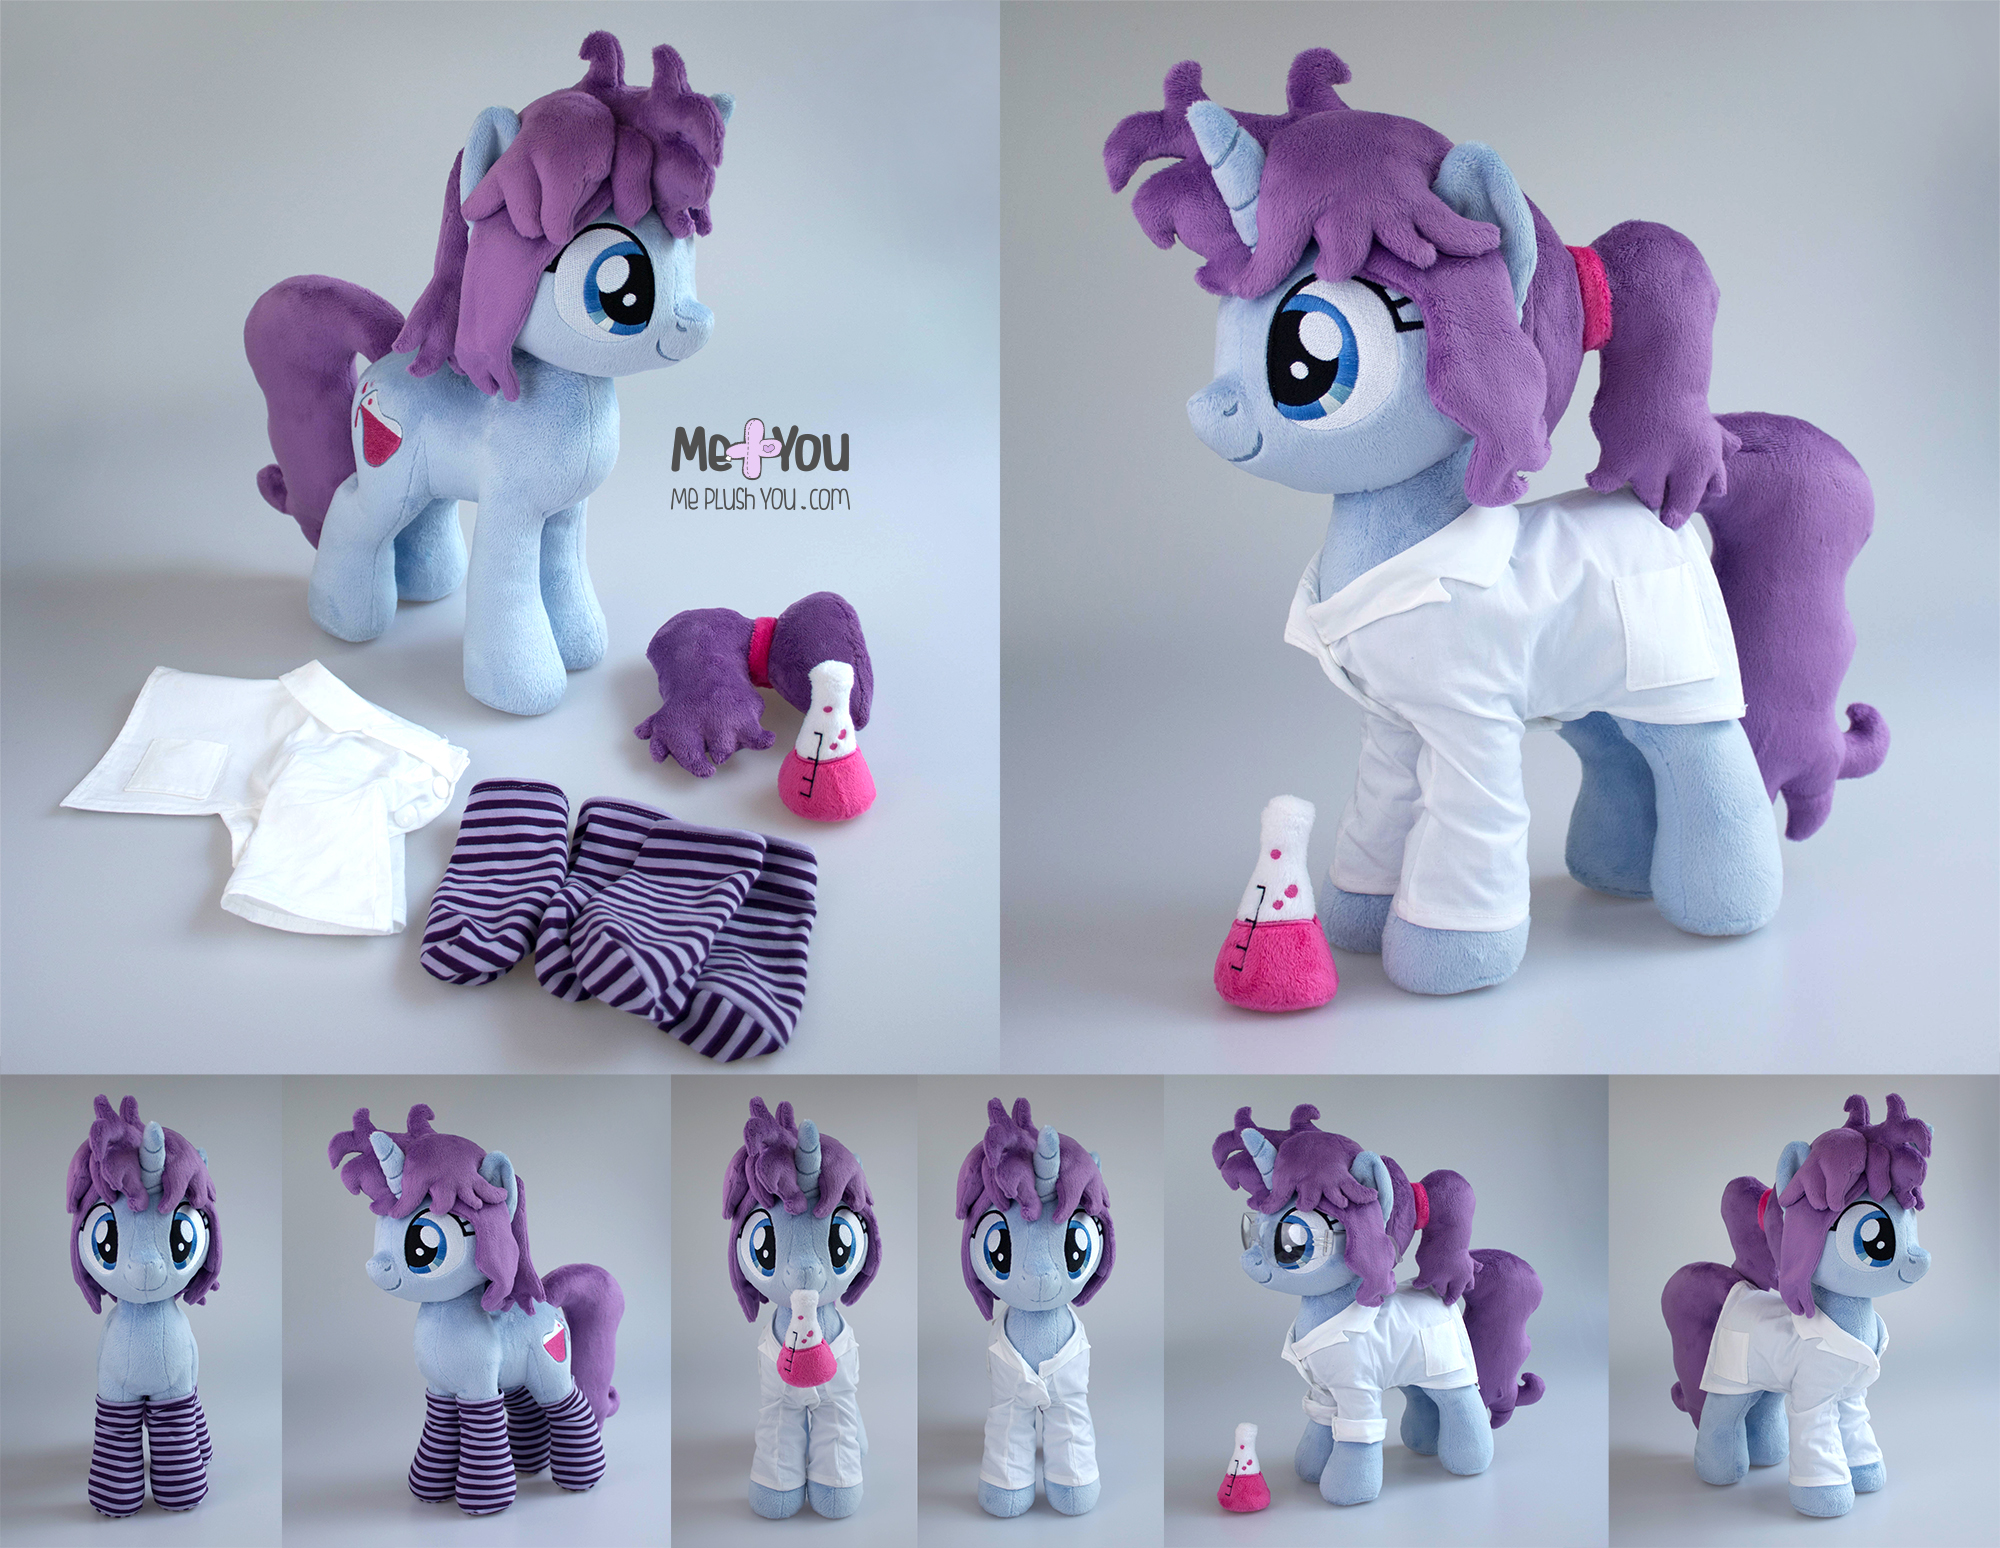 Blithe: One pony, two looks!